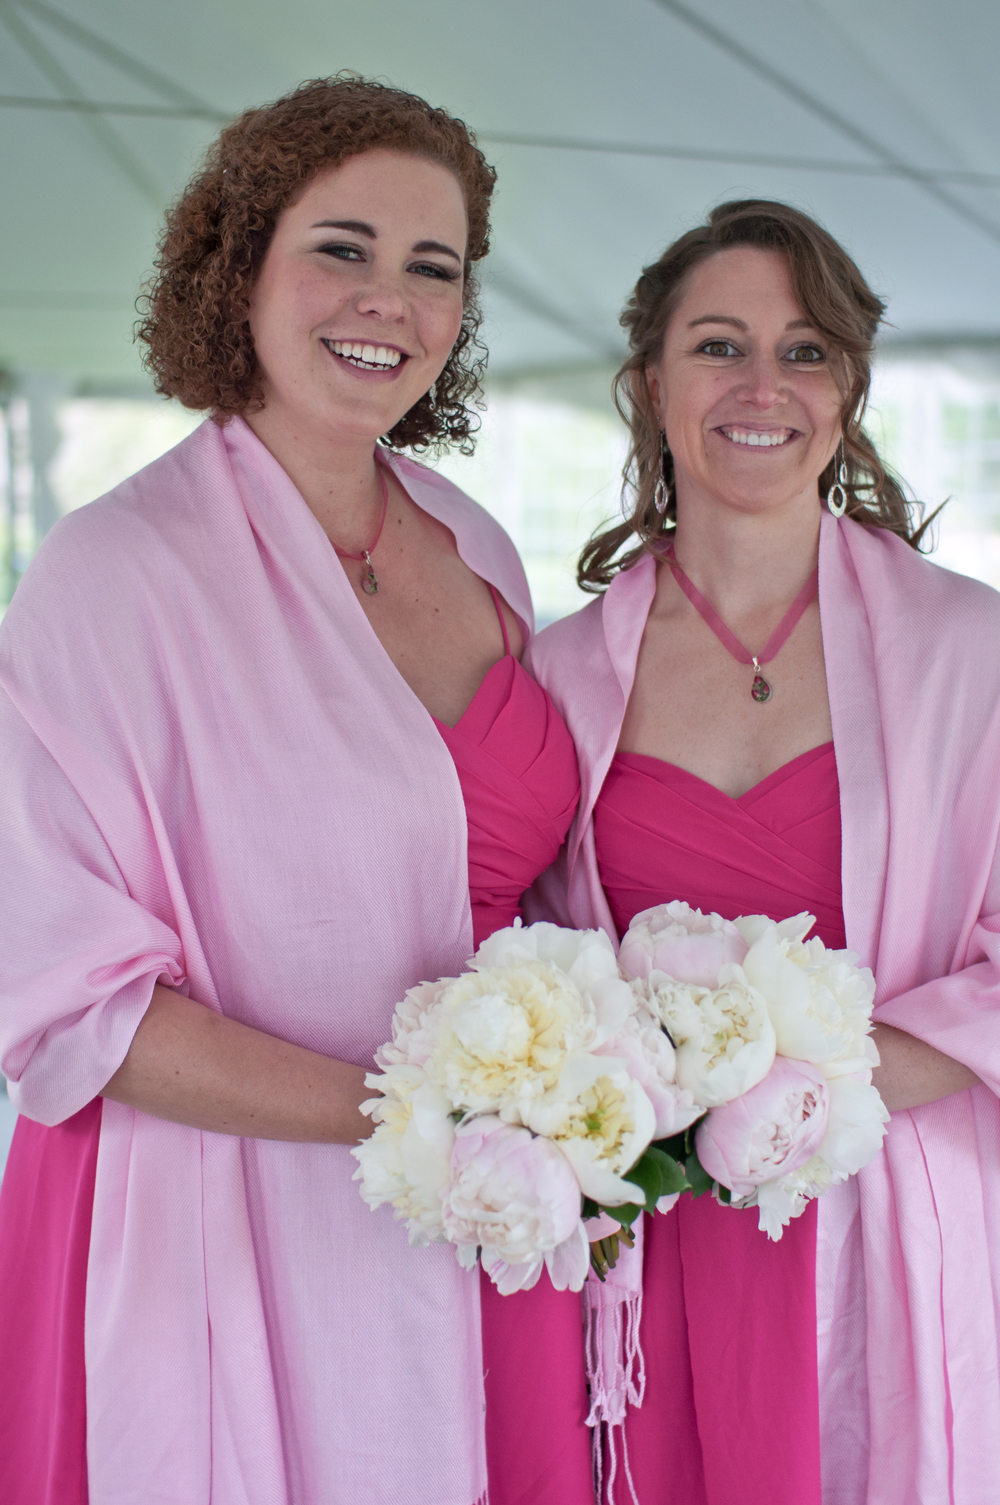 boothbay maine wedding officiant